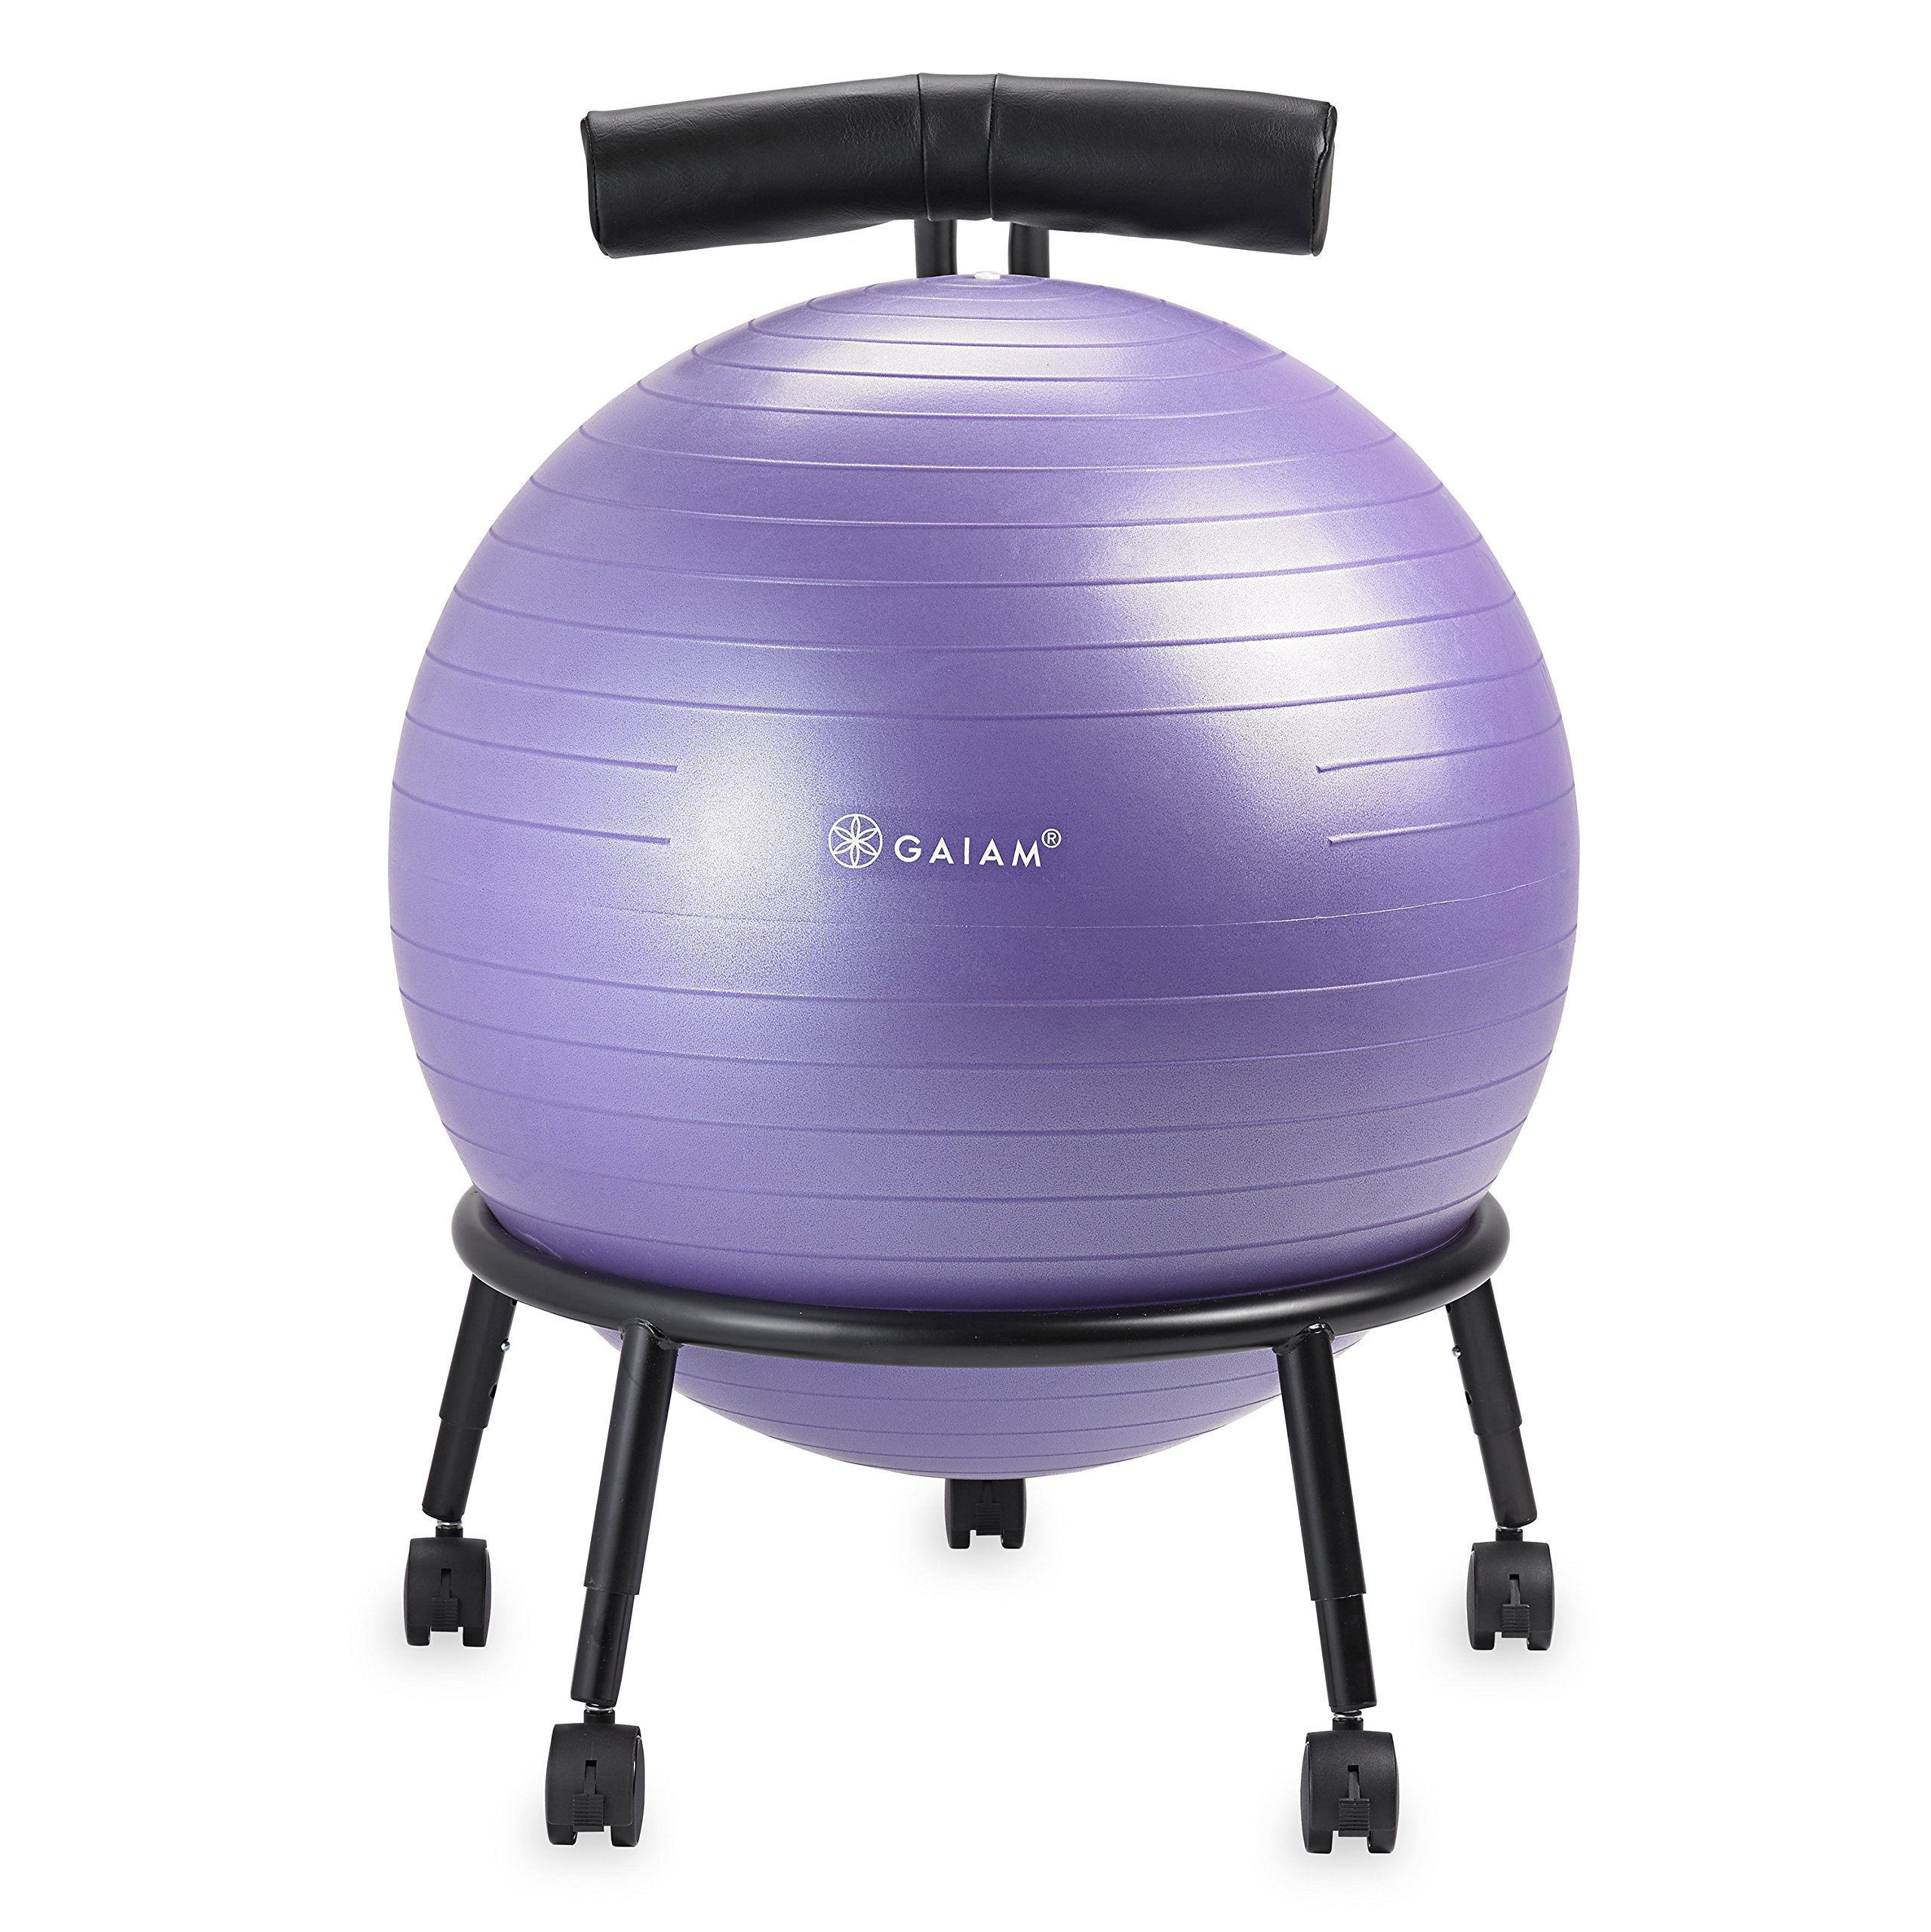 Gaiam Adjustable Custom-Fit Balance Ball Chair, Stability Ball Desk Chair with 55cm Yoga Ball, Inflation Pump and Exercise Guide for Home or Office, Purple